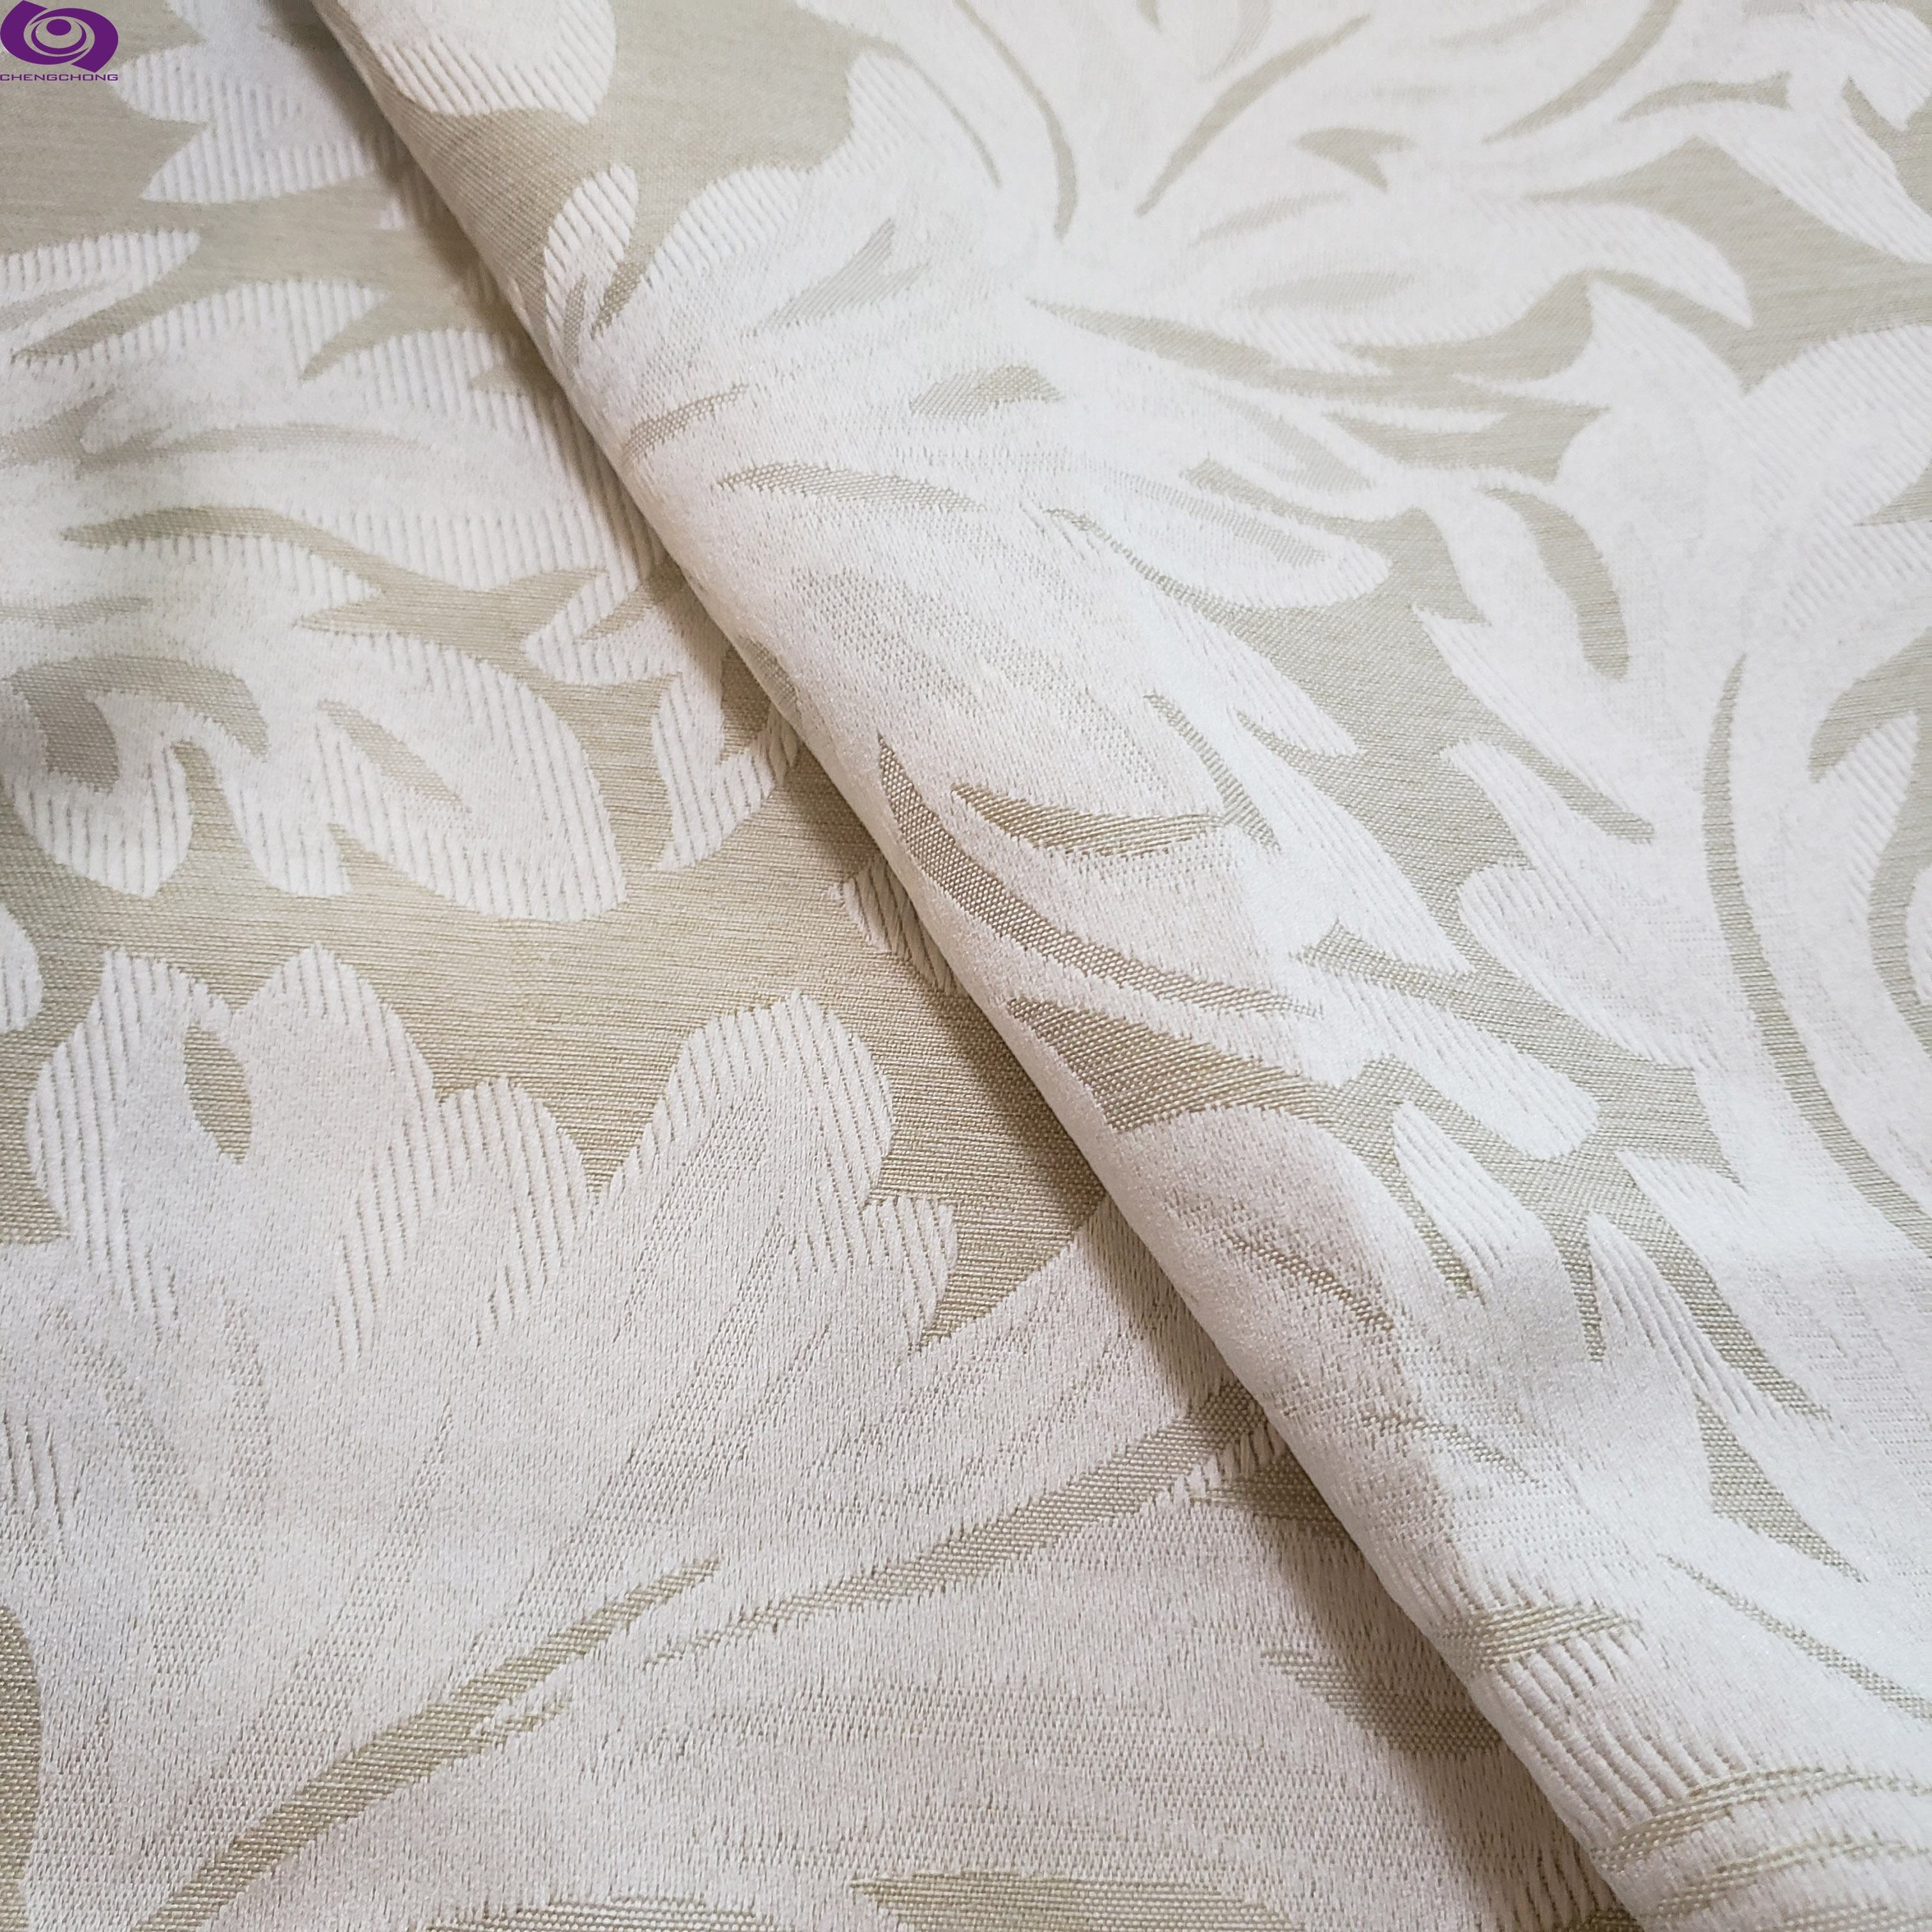 Shaoxing manufacture jacquard woven fabric polyester metallic soft fabric